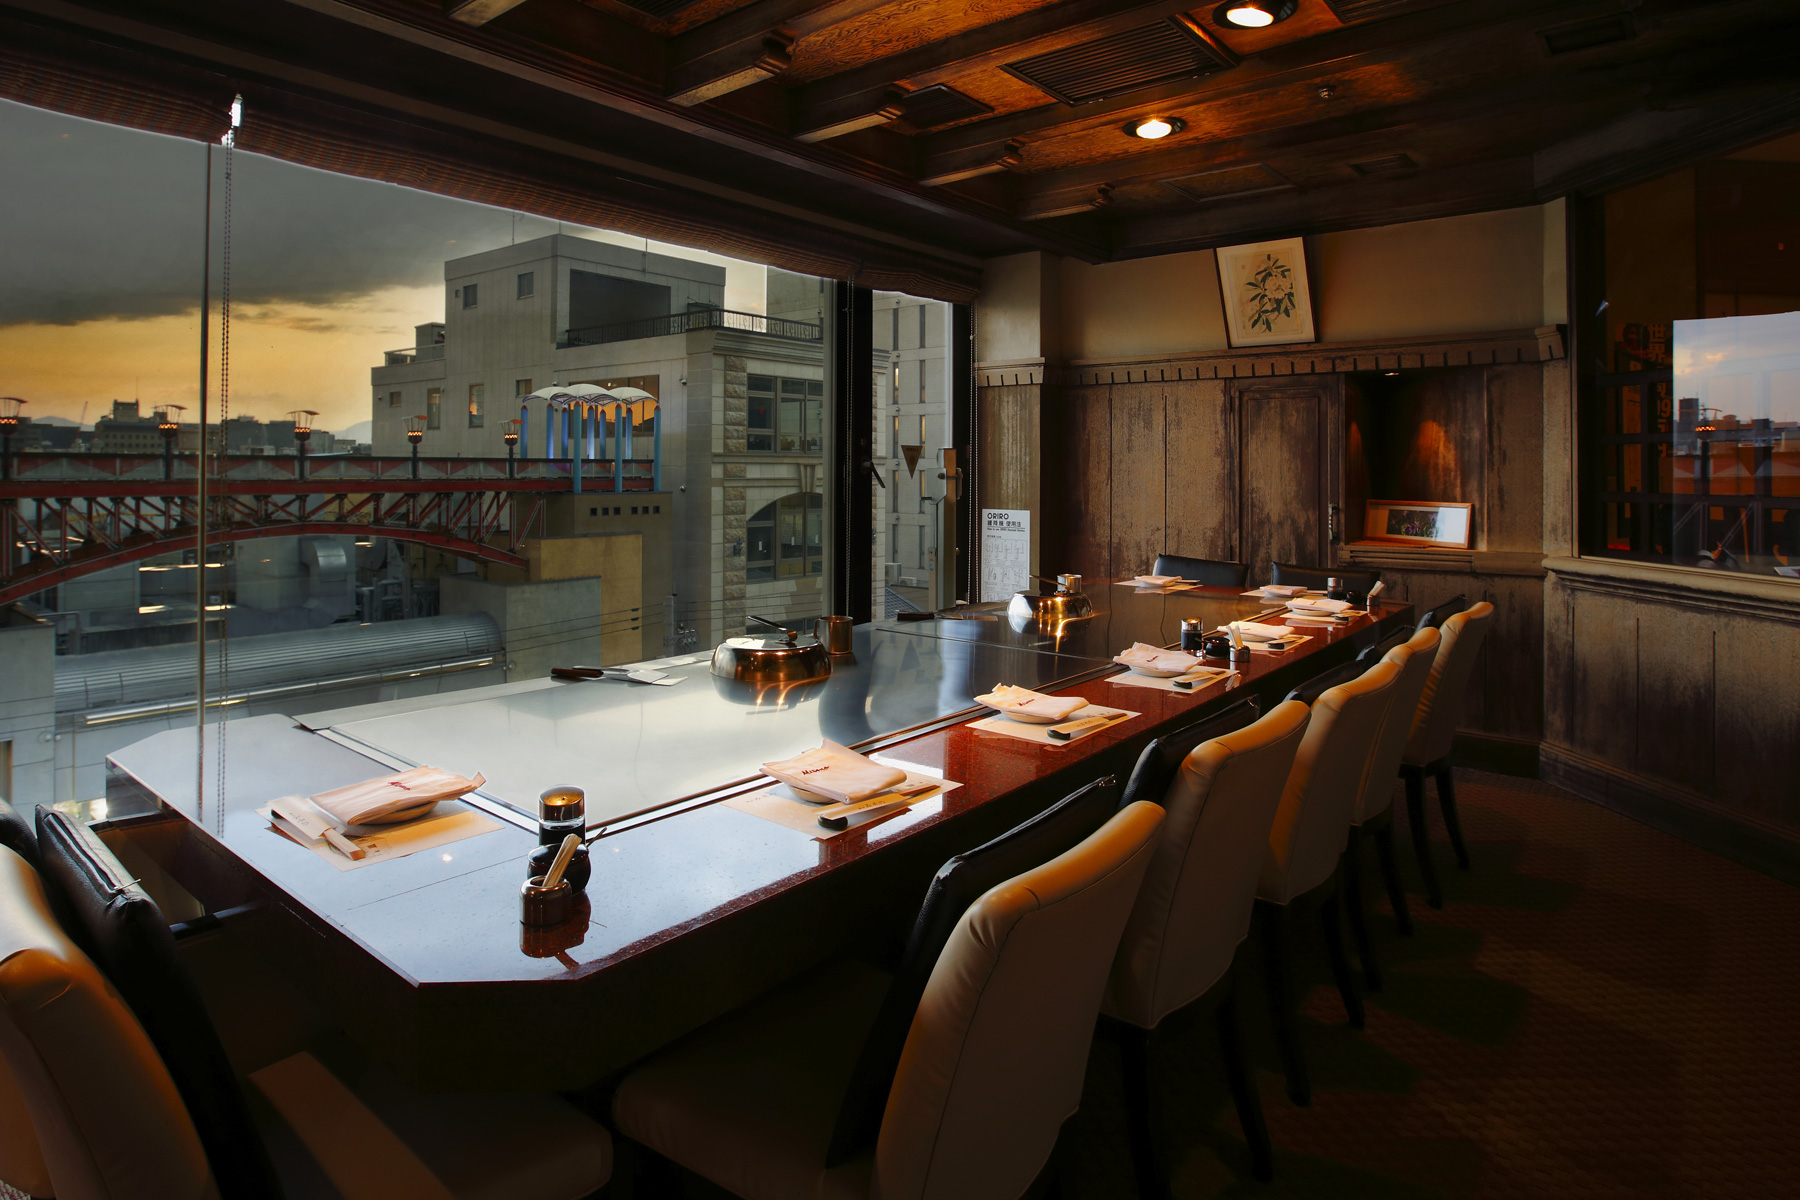 Misono restaurants Enjoy the taste of Misono's original teppanyaki Kobe beef steak in our restaurant located in the ancient city of Kyoto.